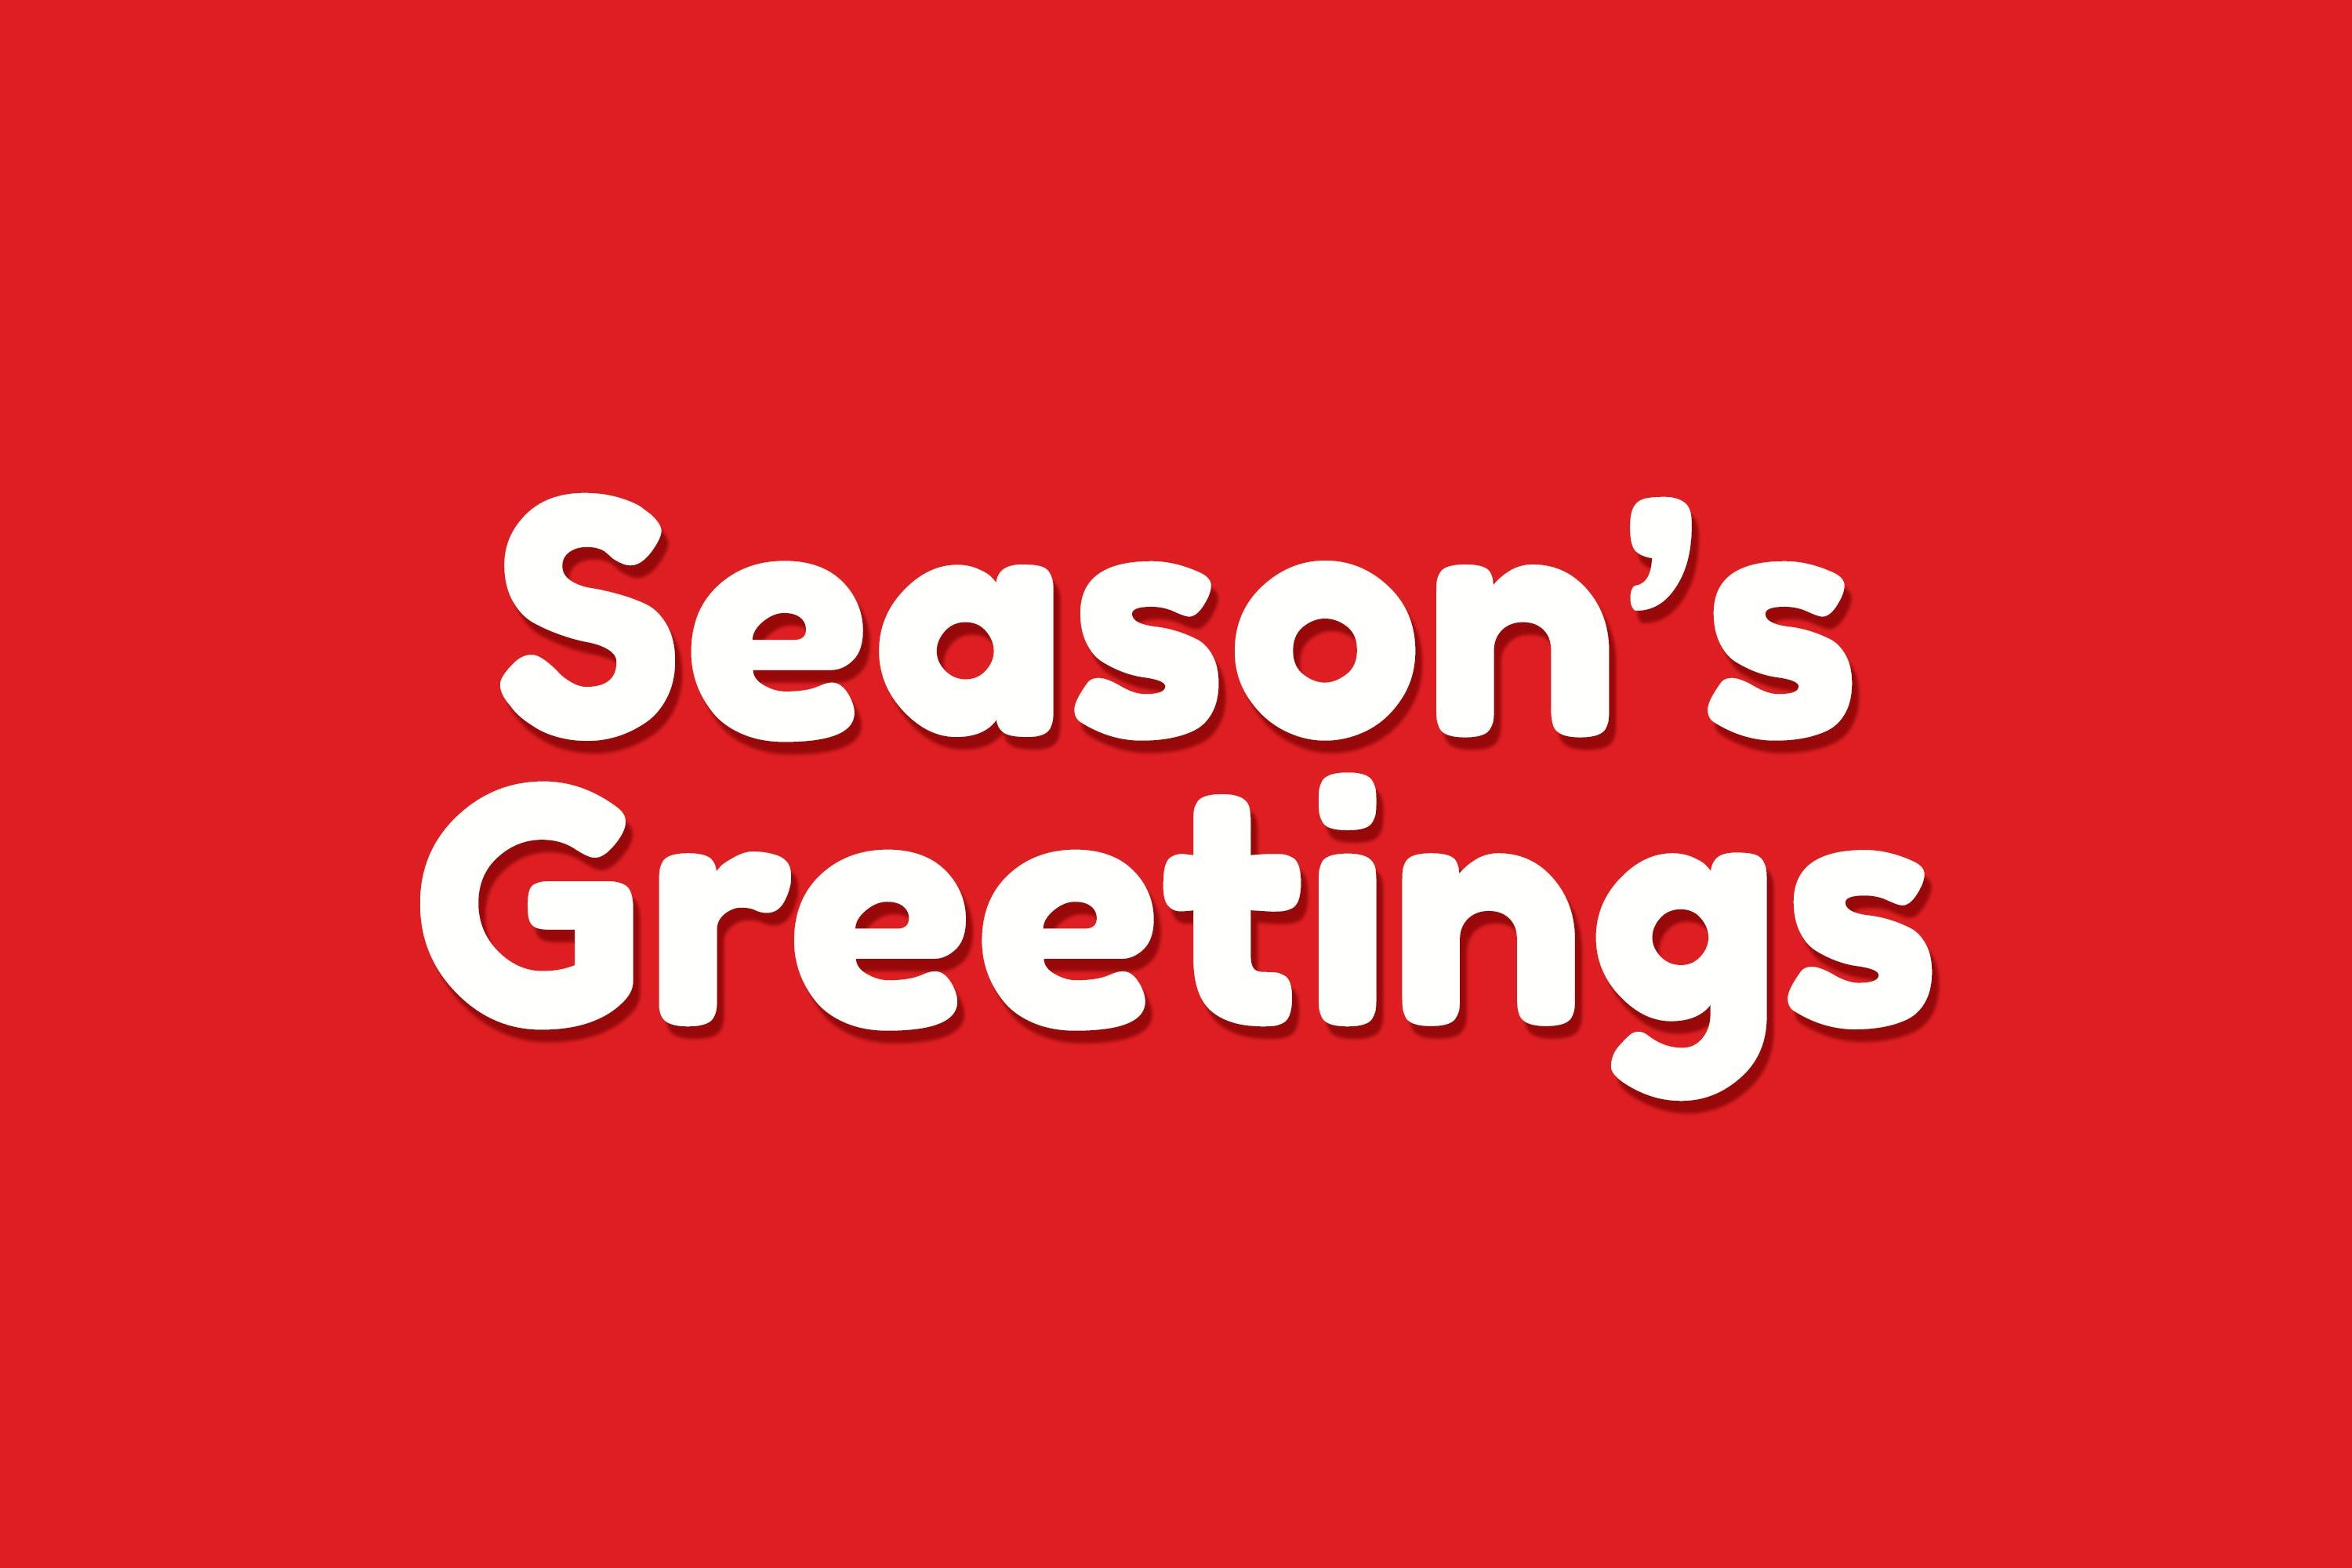 15 Season's Greetings Cards Stock Image, HD Wallpapers